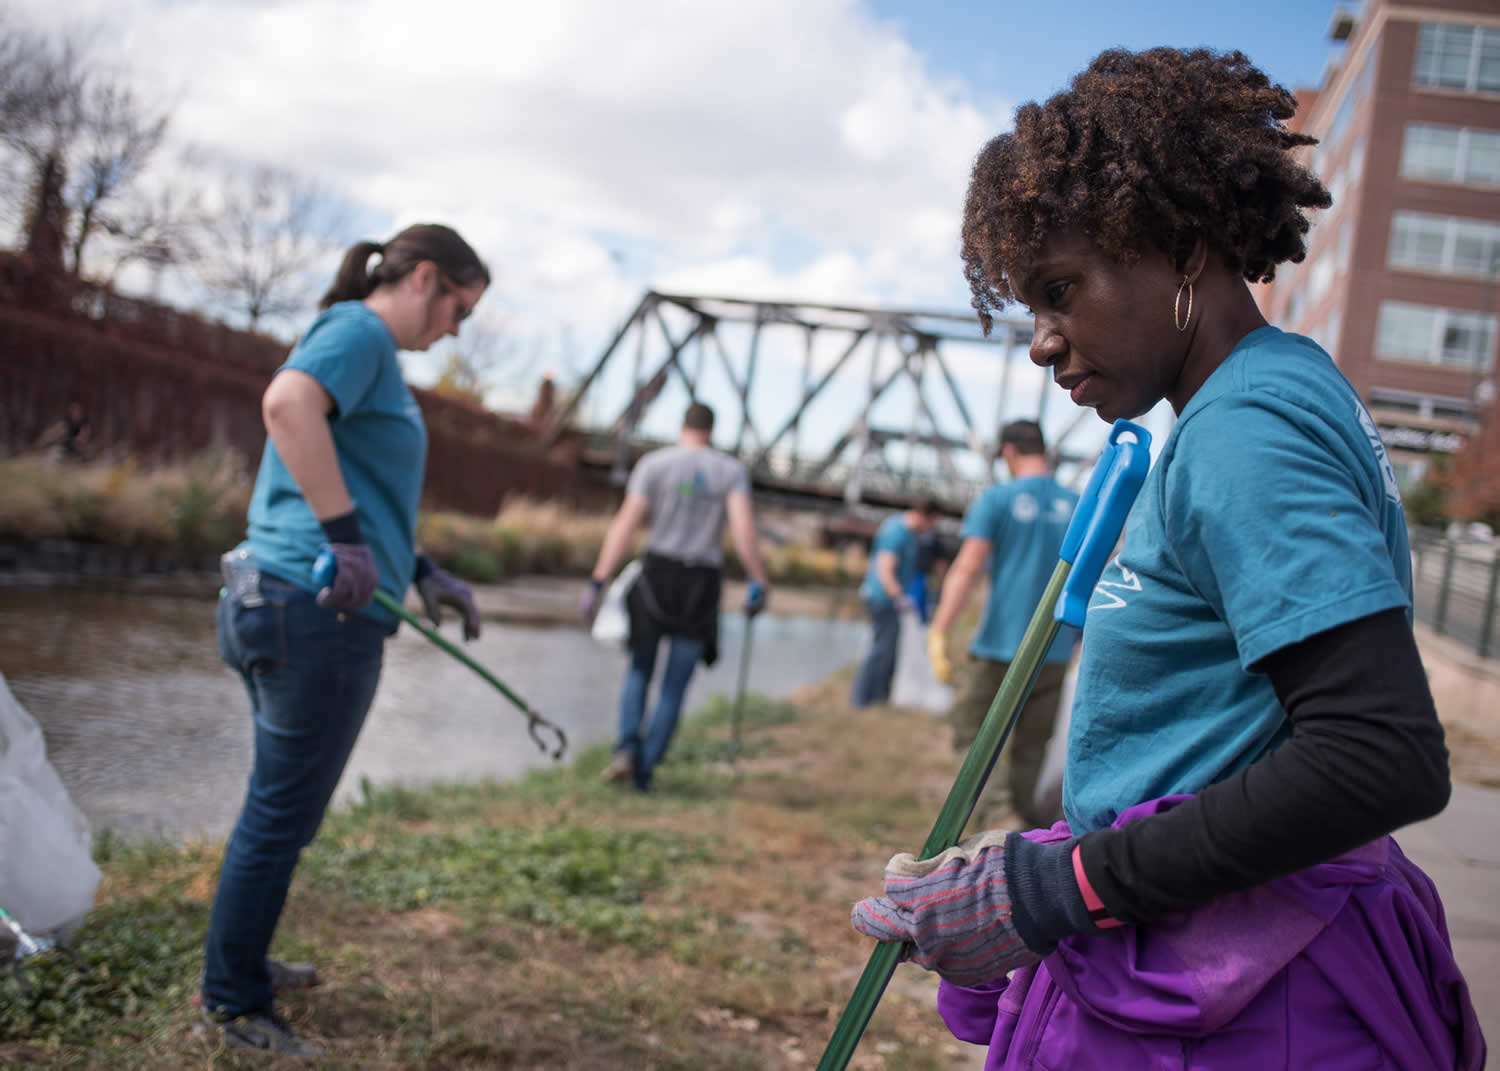 naem-2016-10-11-latest-news-corporate-ehs-sustainability-leaders-to-participate-in-platte-river-cleanup-in-denver-for-2016-naem-day-of-service-700x500